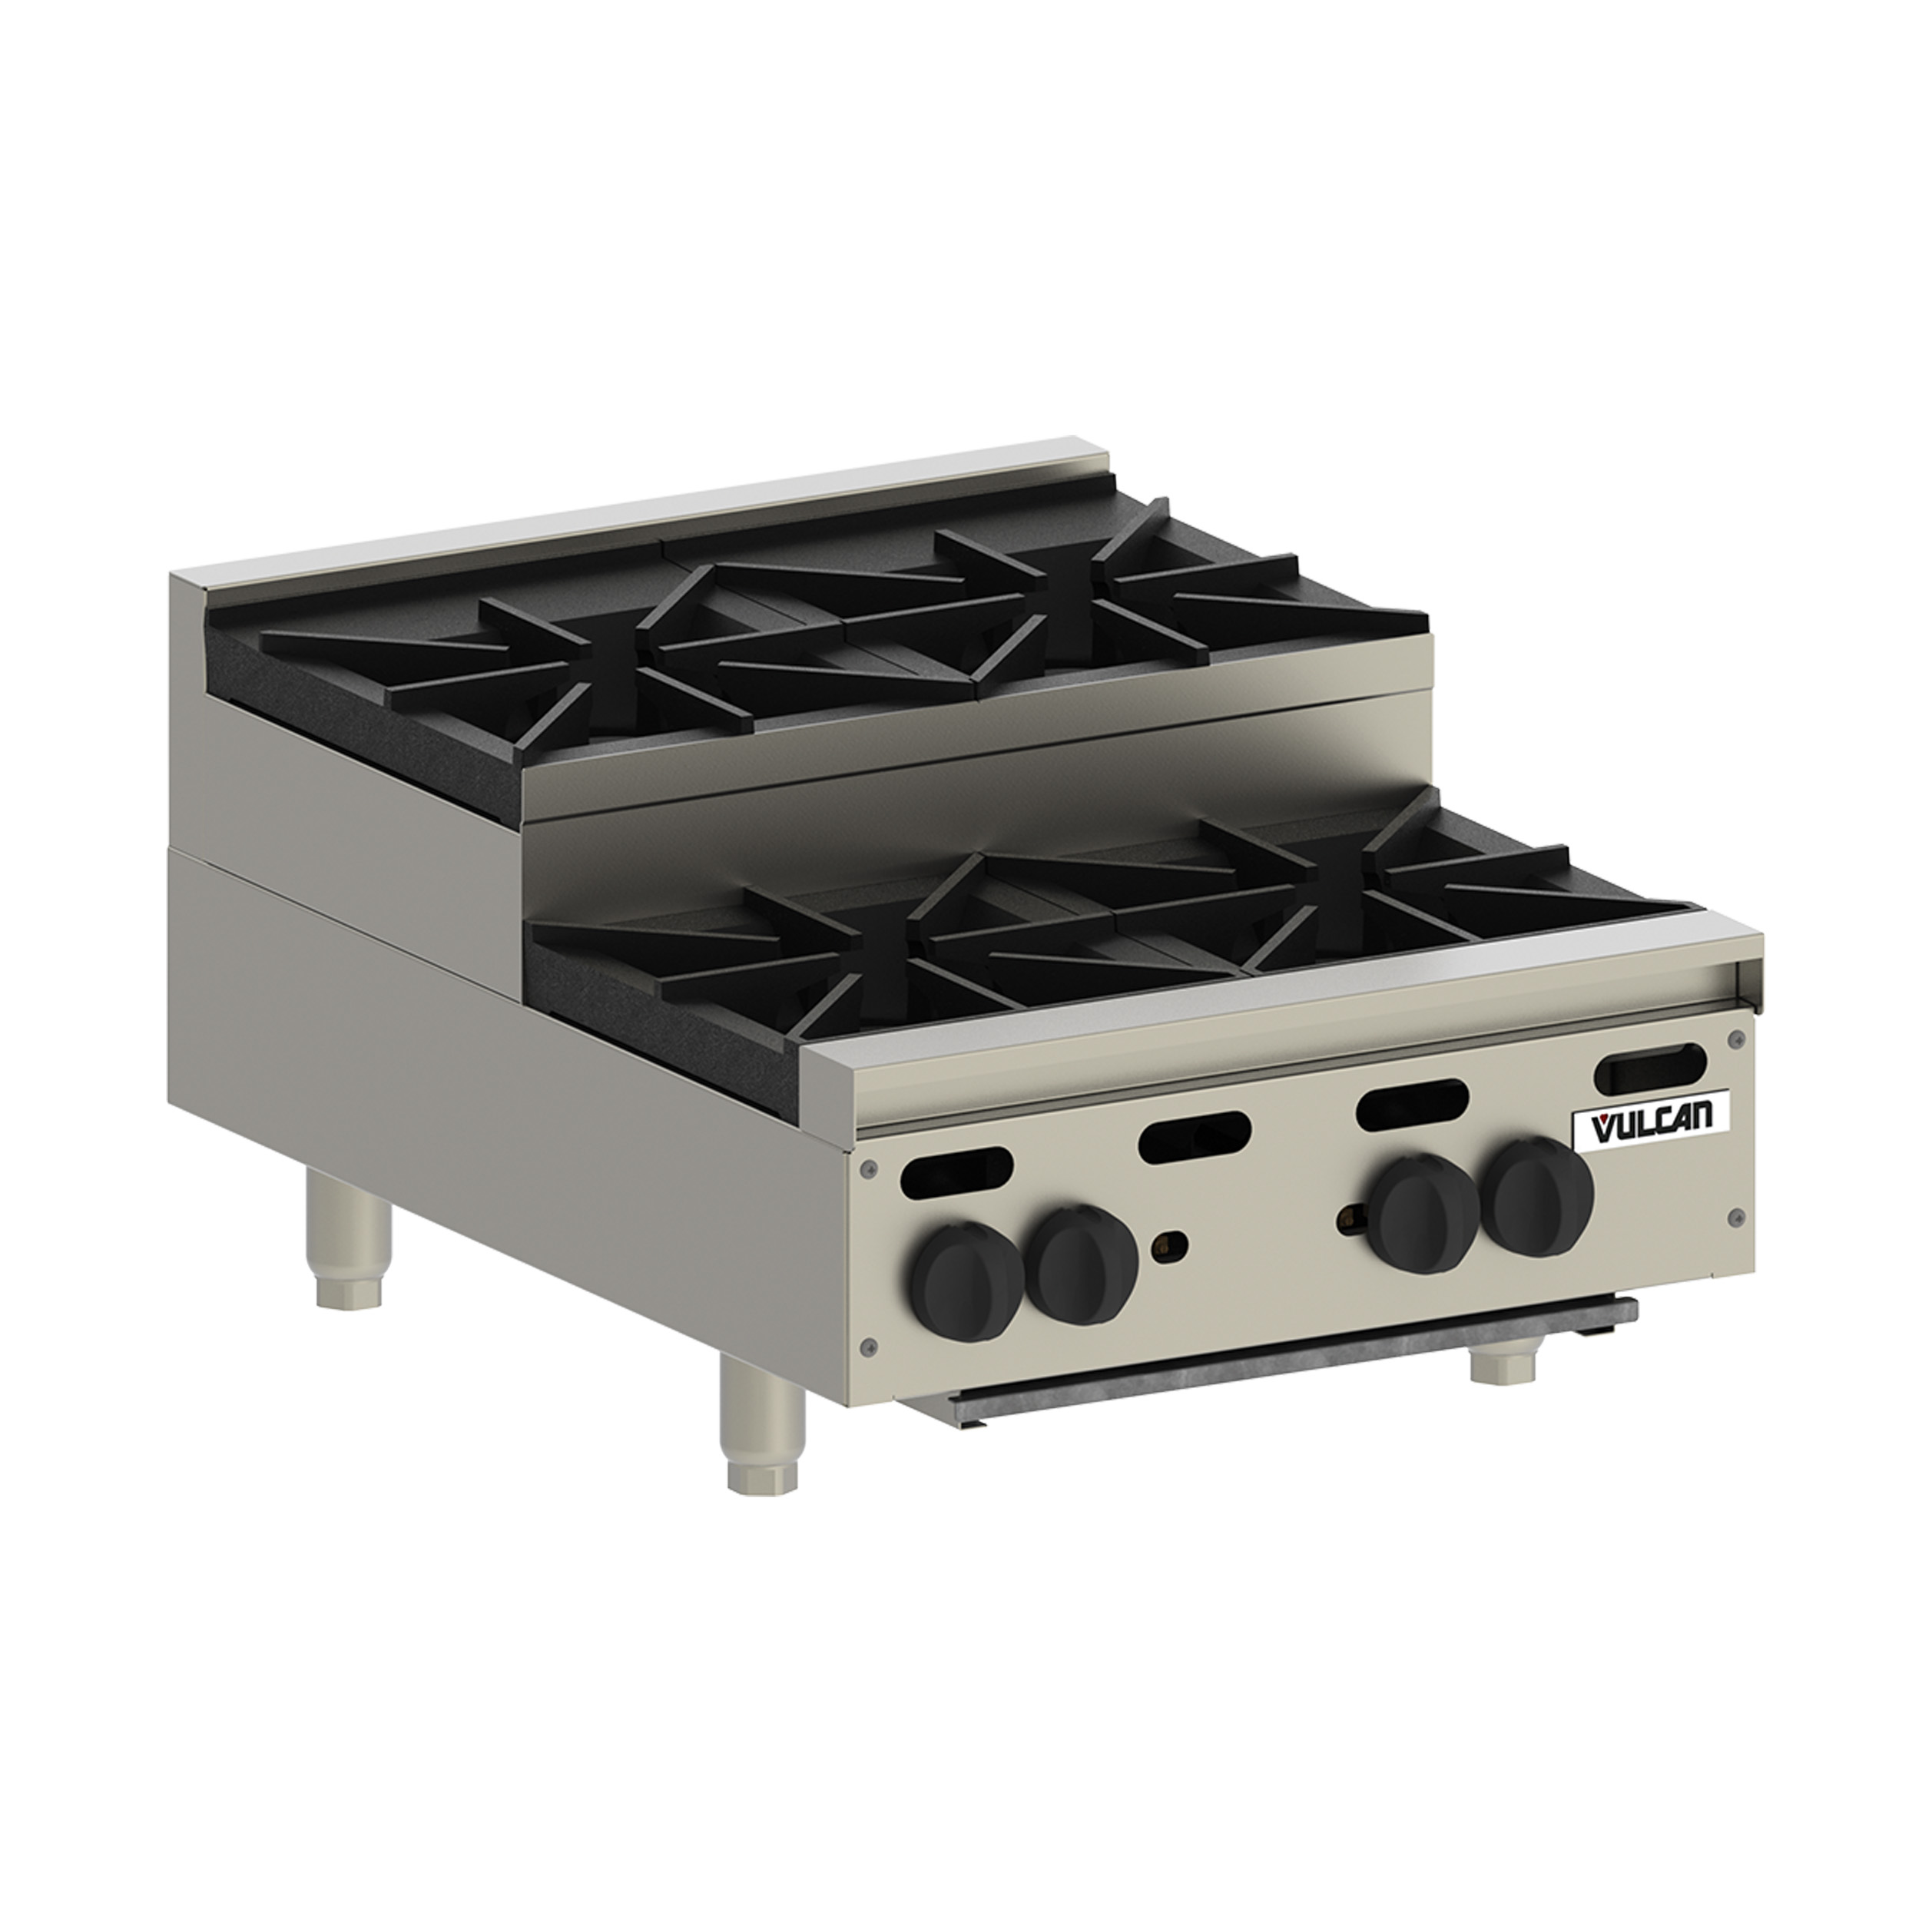 Vulcan VHP636U hotplate, countertop, gas